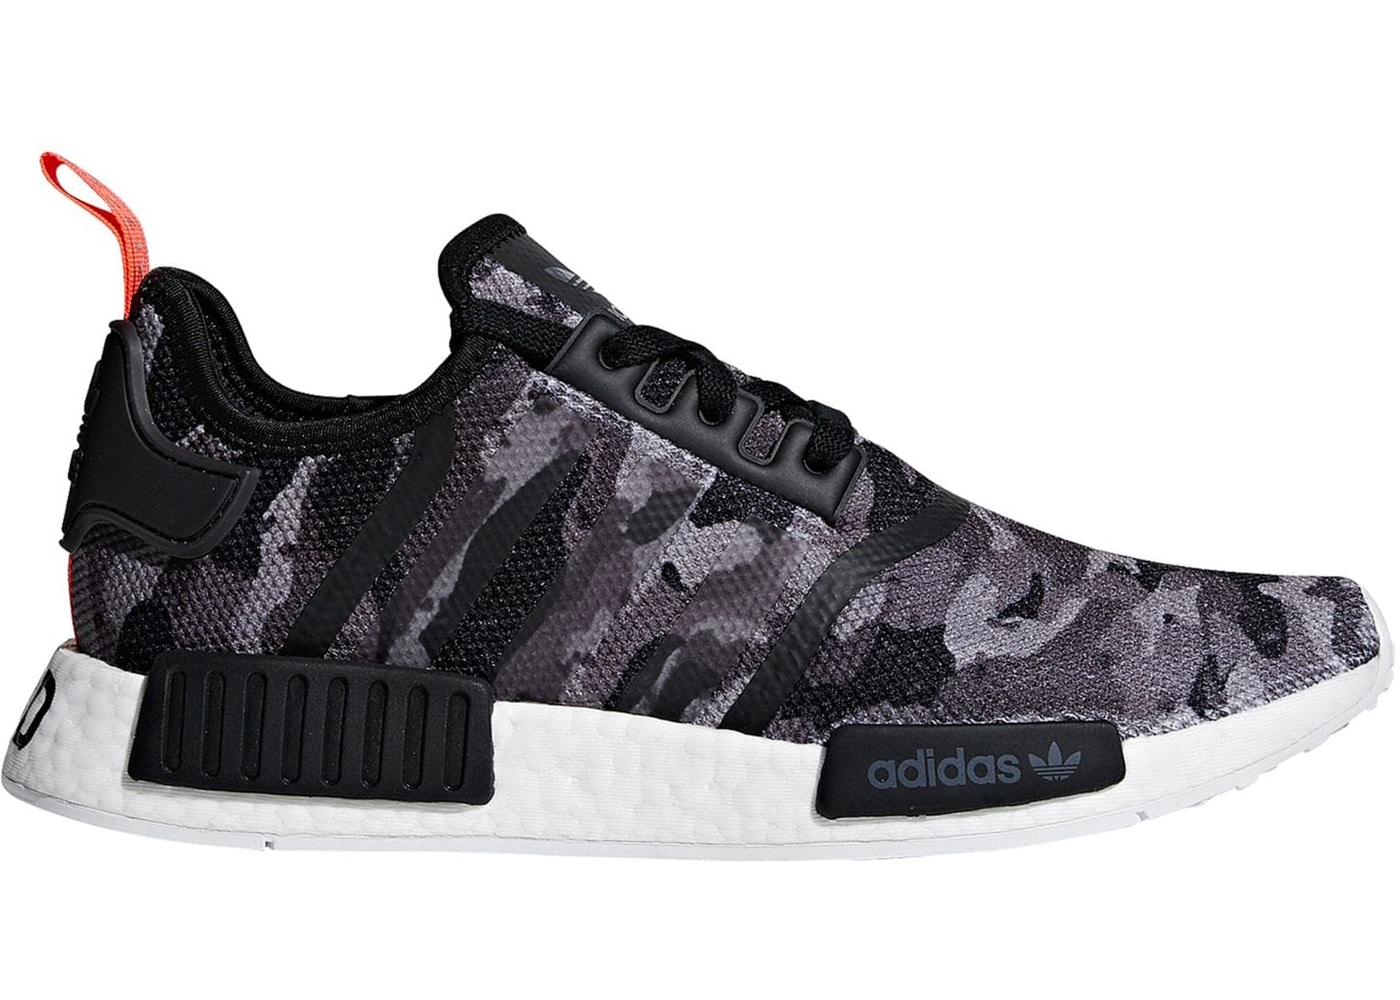 on sale ca59e 28642 adidas NMD R1 Grey Camo